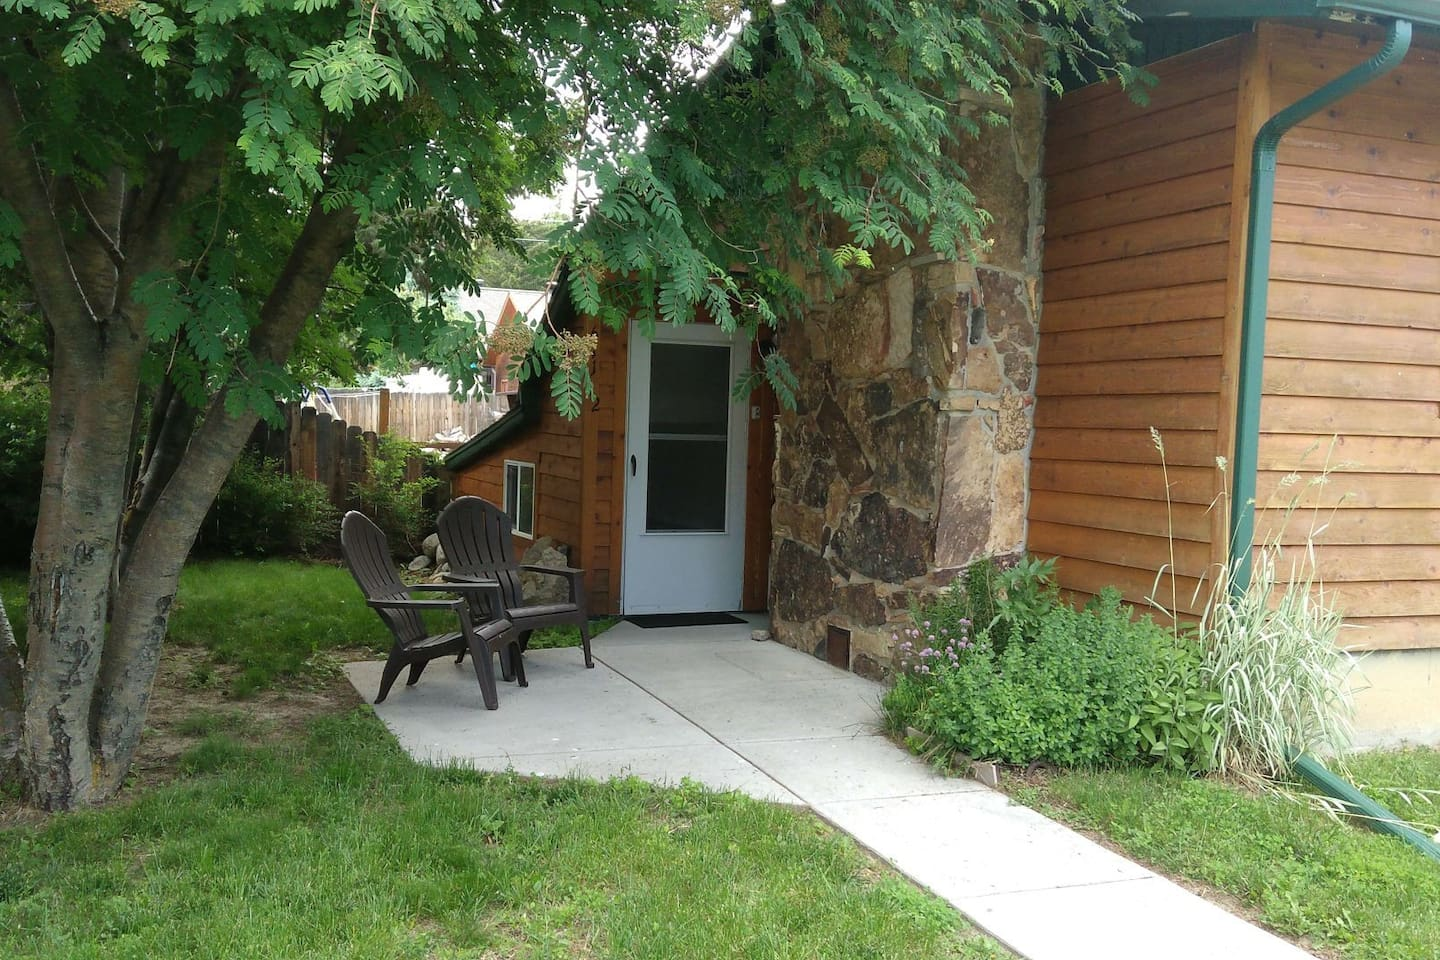 Entry & outdoor seating